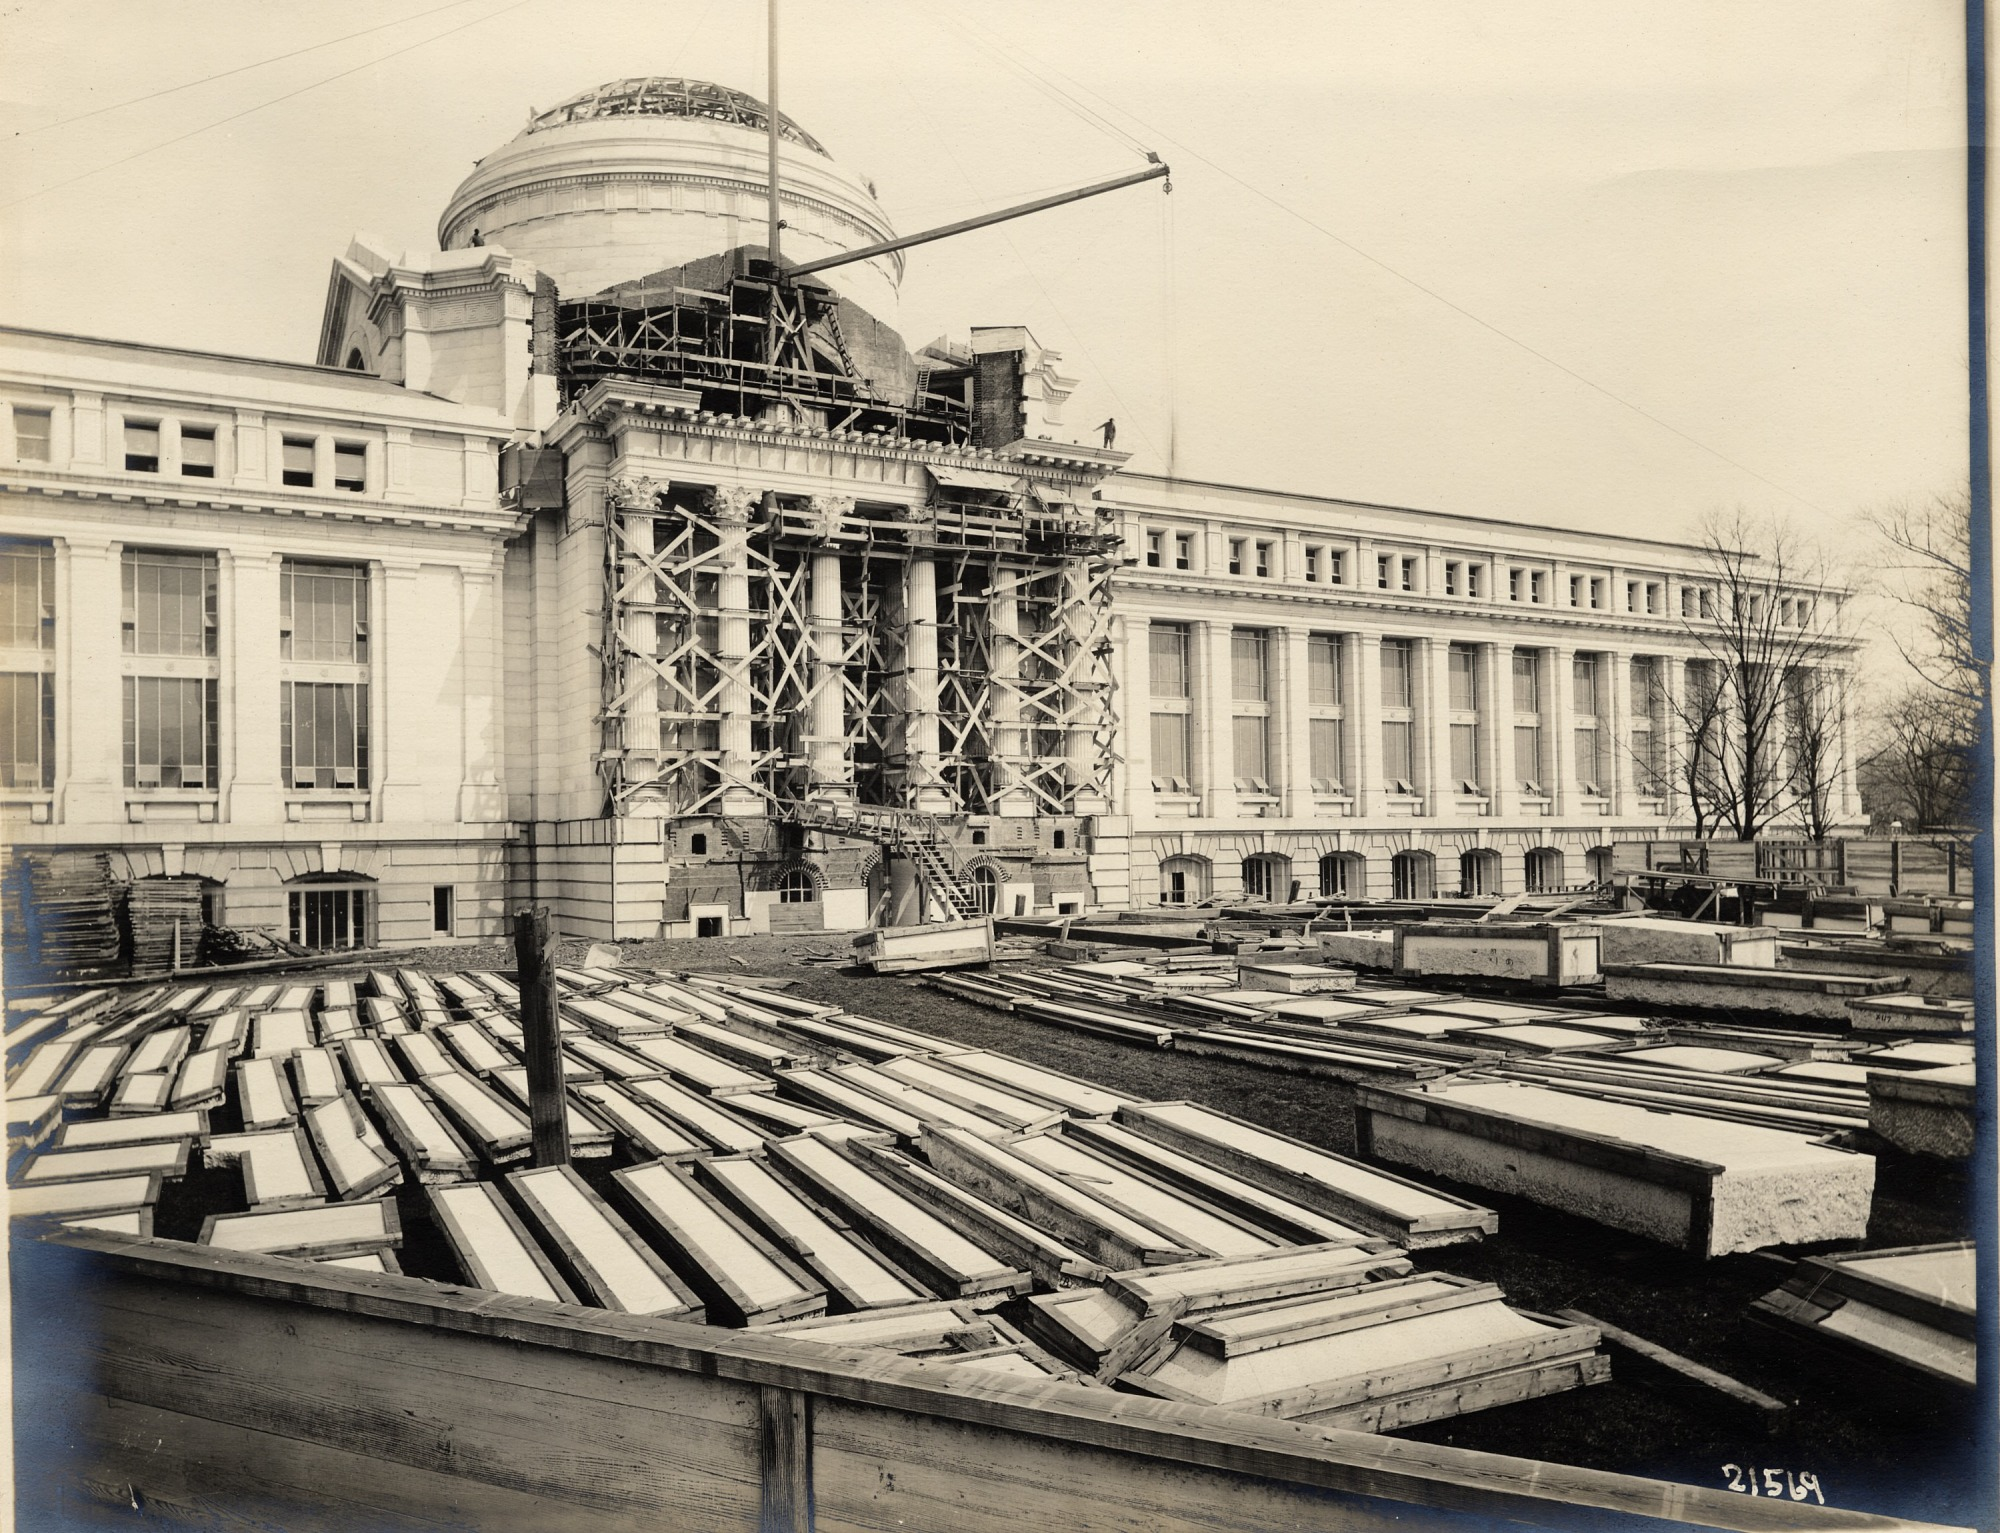 Construction on front of National Museum of Natural History, 1909